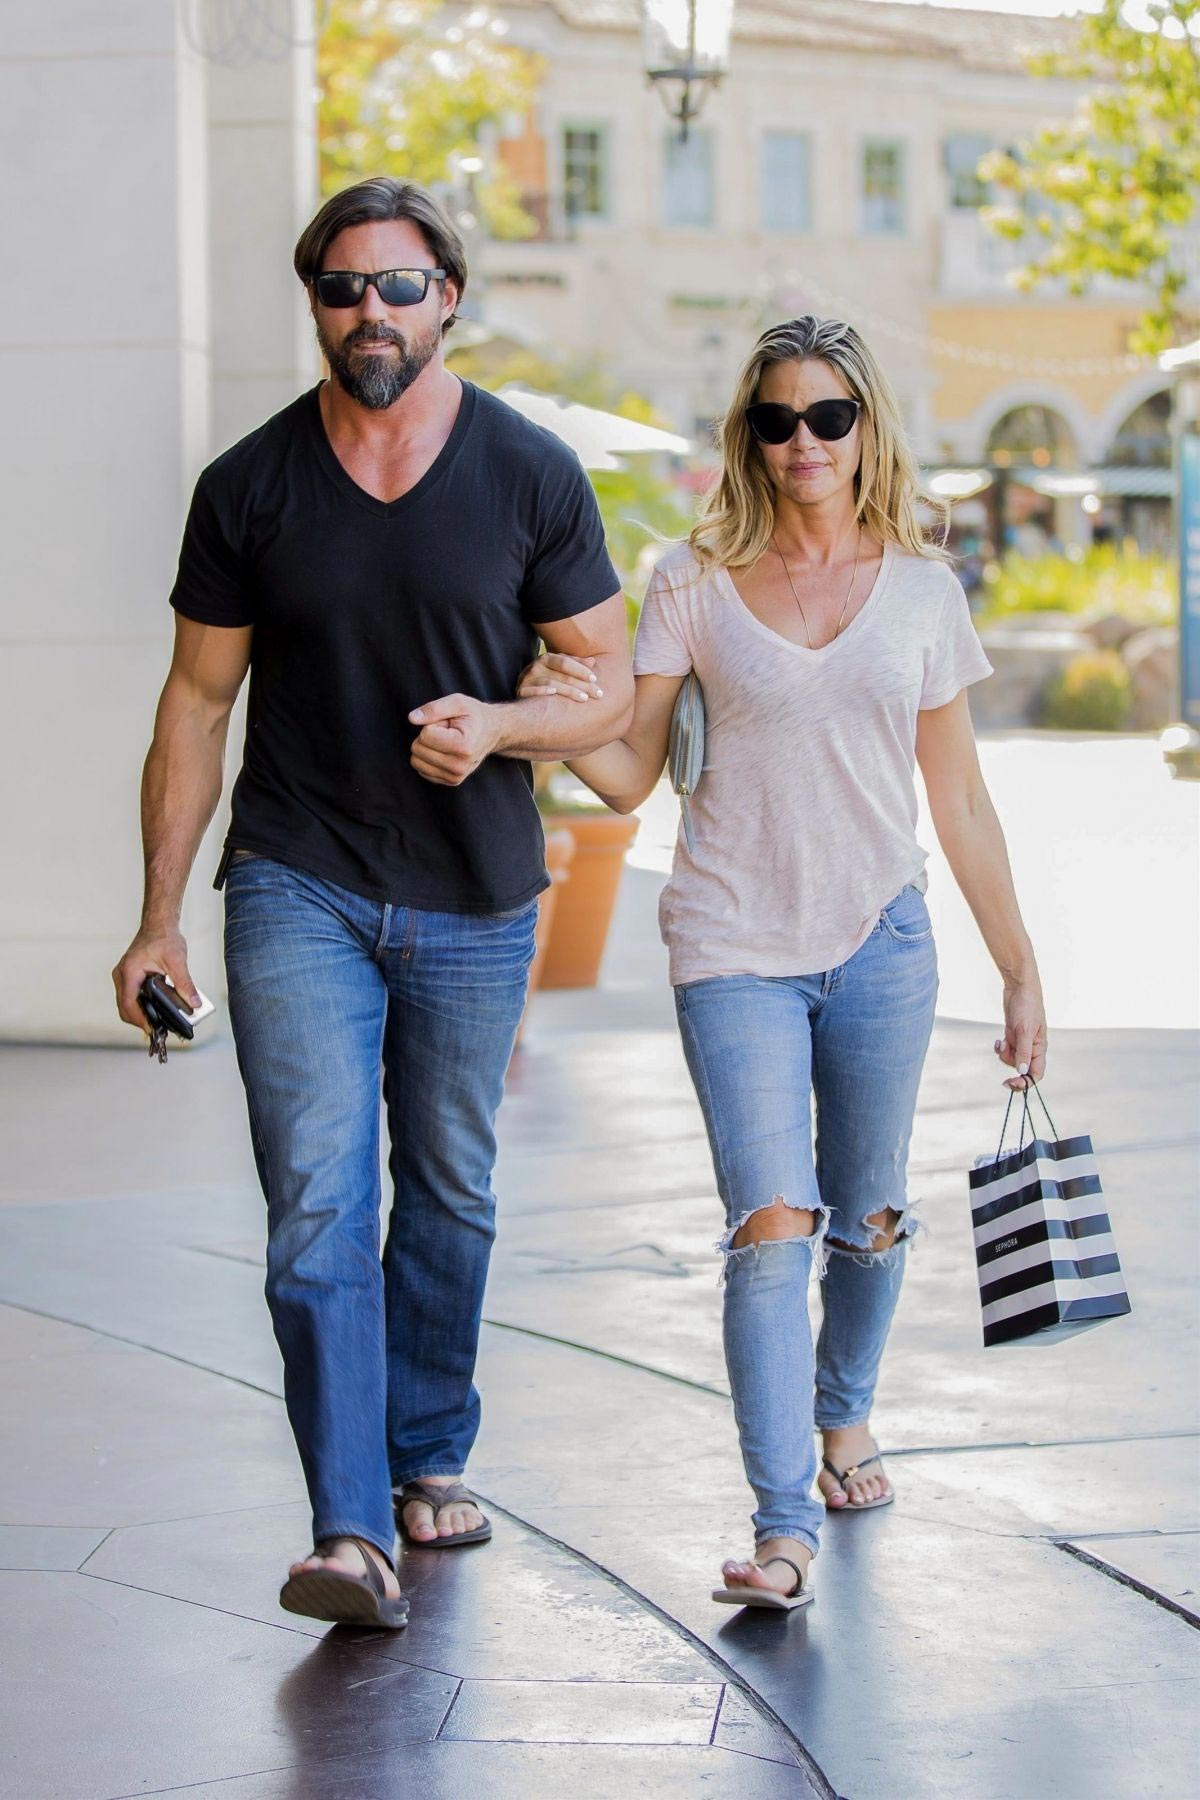 denise richards and aaron phypers out in calabasas 2018 08 14 02 - Denise Richards and Aaron Phypers Out in Calabasas 2018/08/14